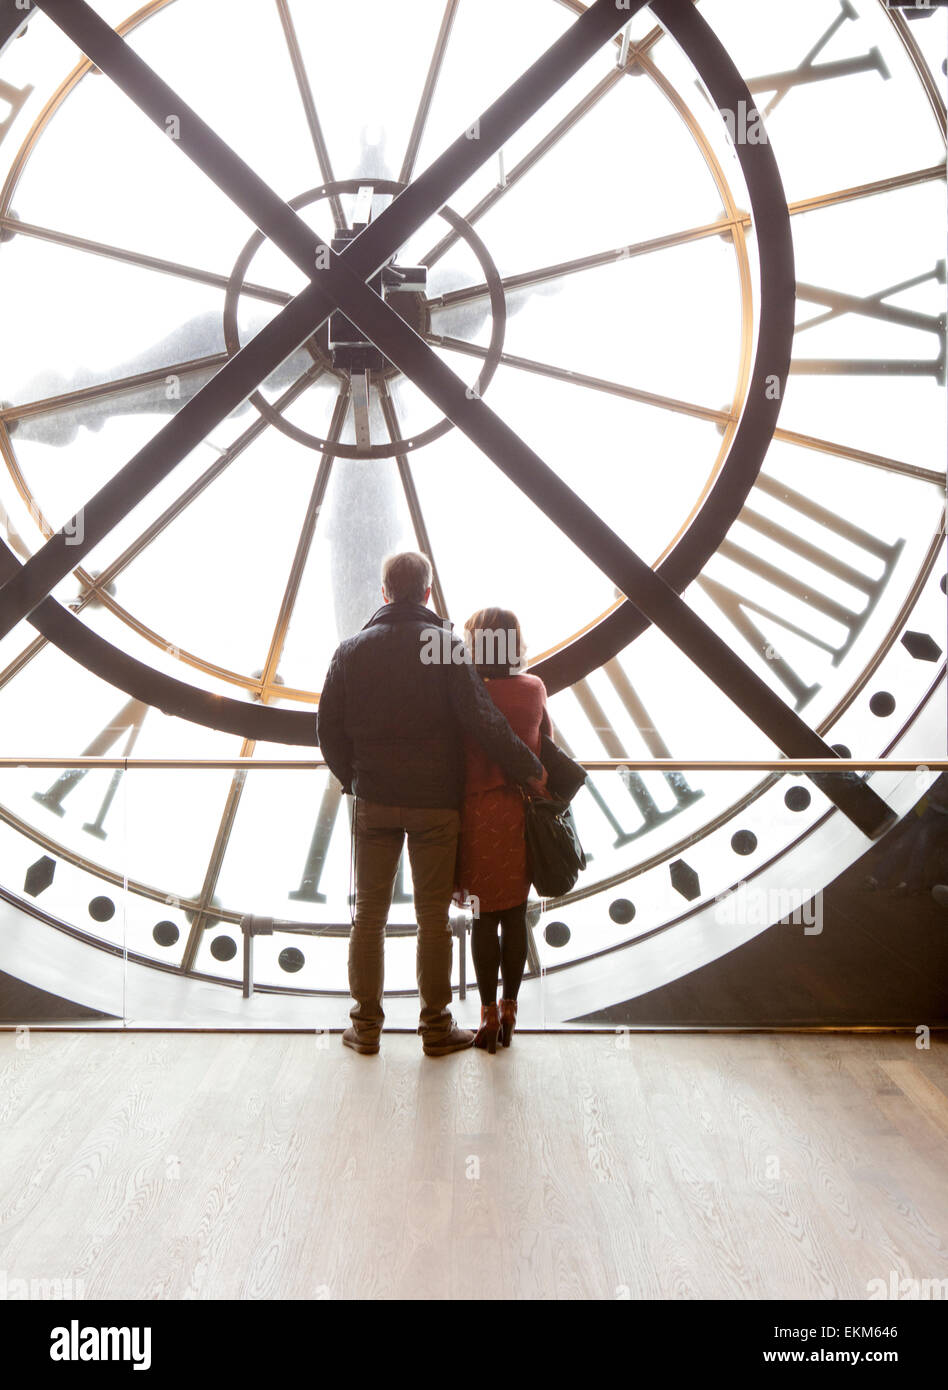 A romantic couple peek through the Orsay Clock in the Musée d'Orsay in Paris - Stock Image